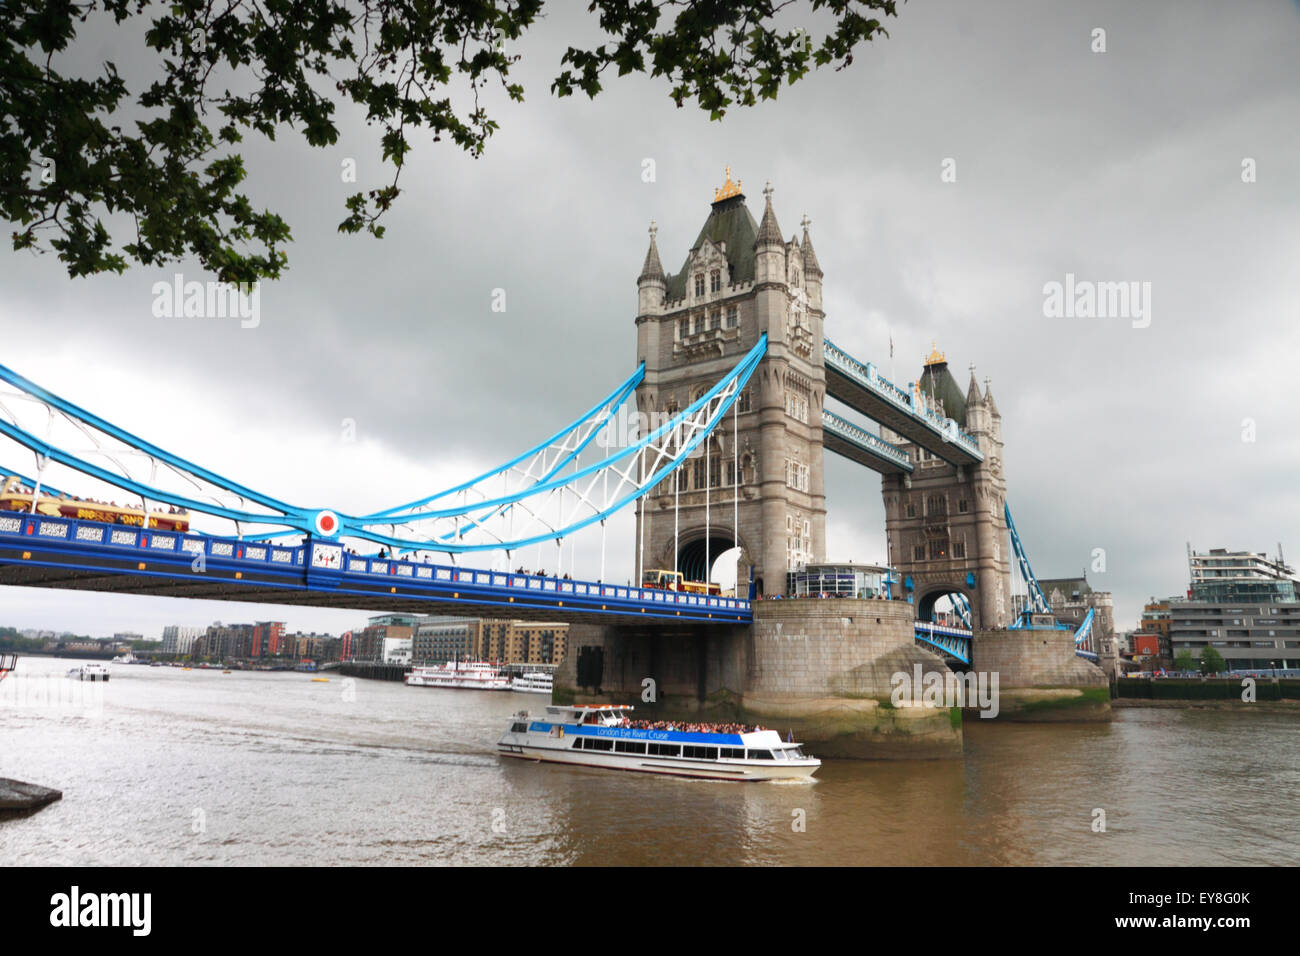 Tower Bridge, London, framed by trees on a grey day and a tourist boat on the river. - Stock Image